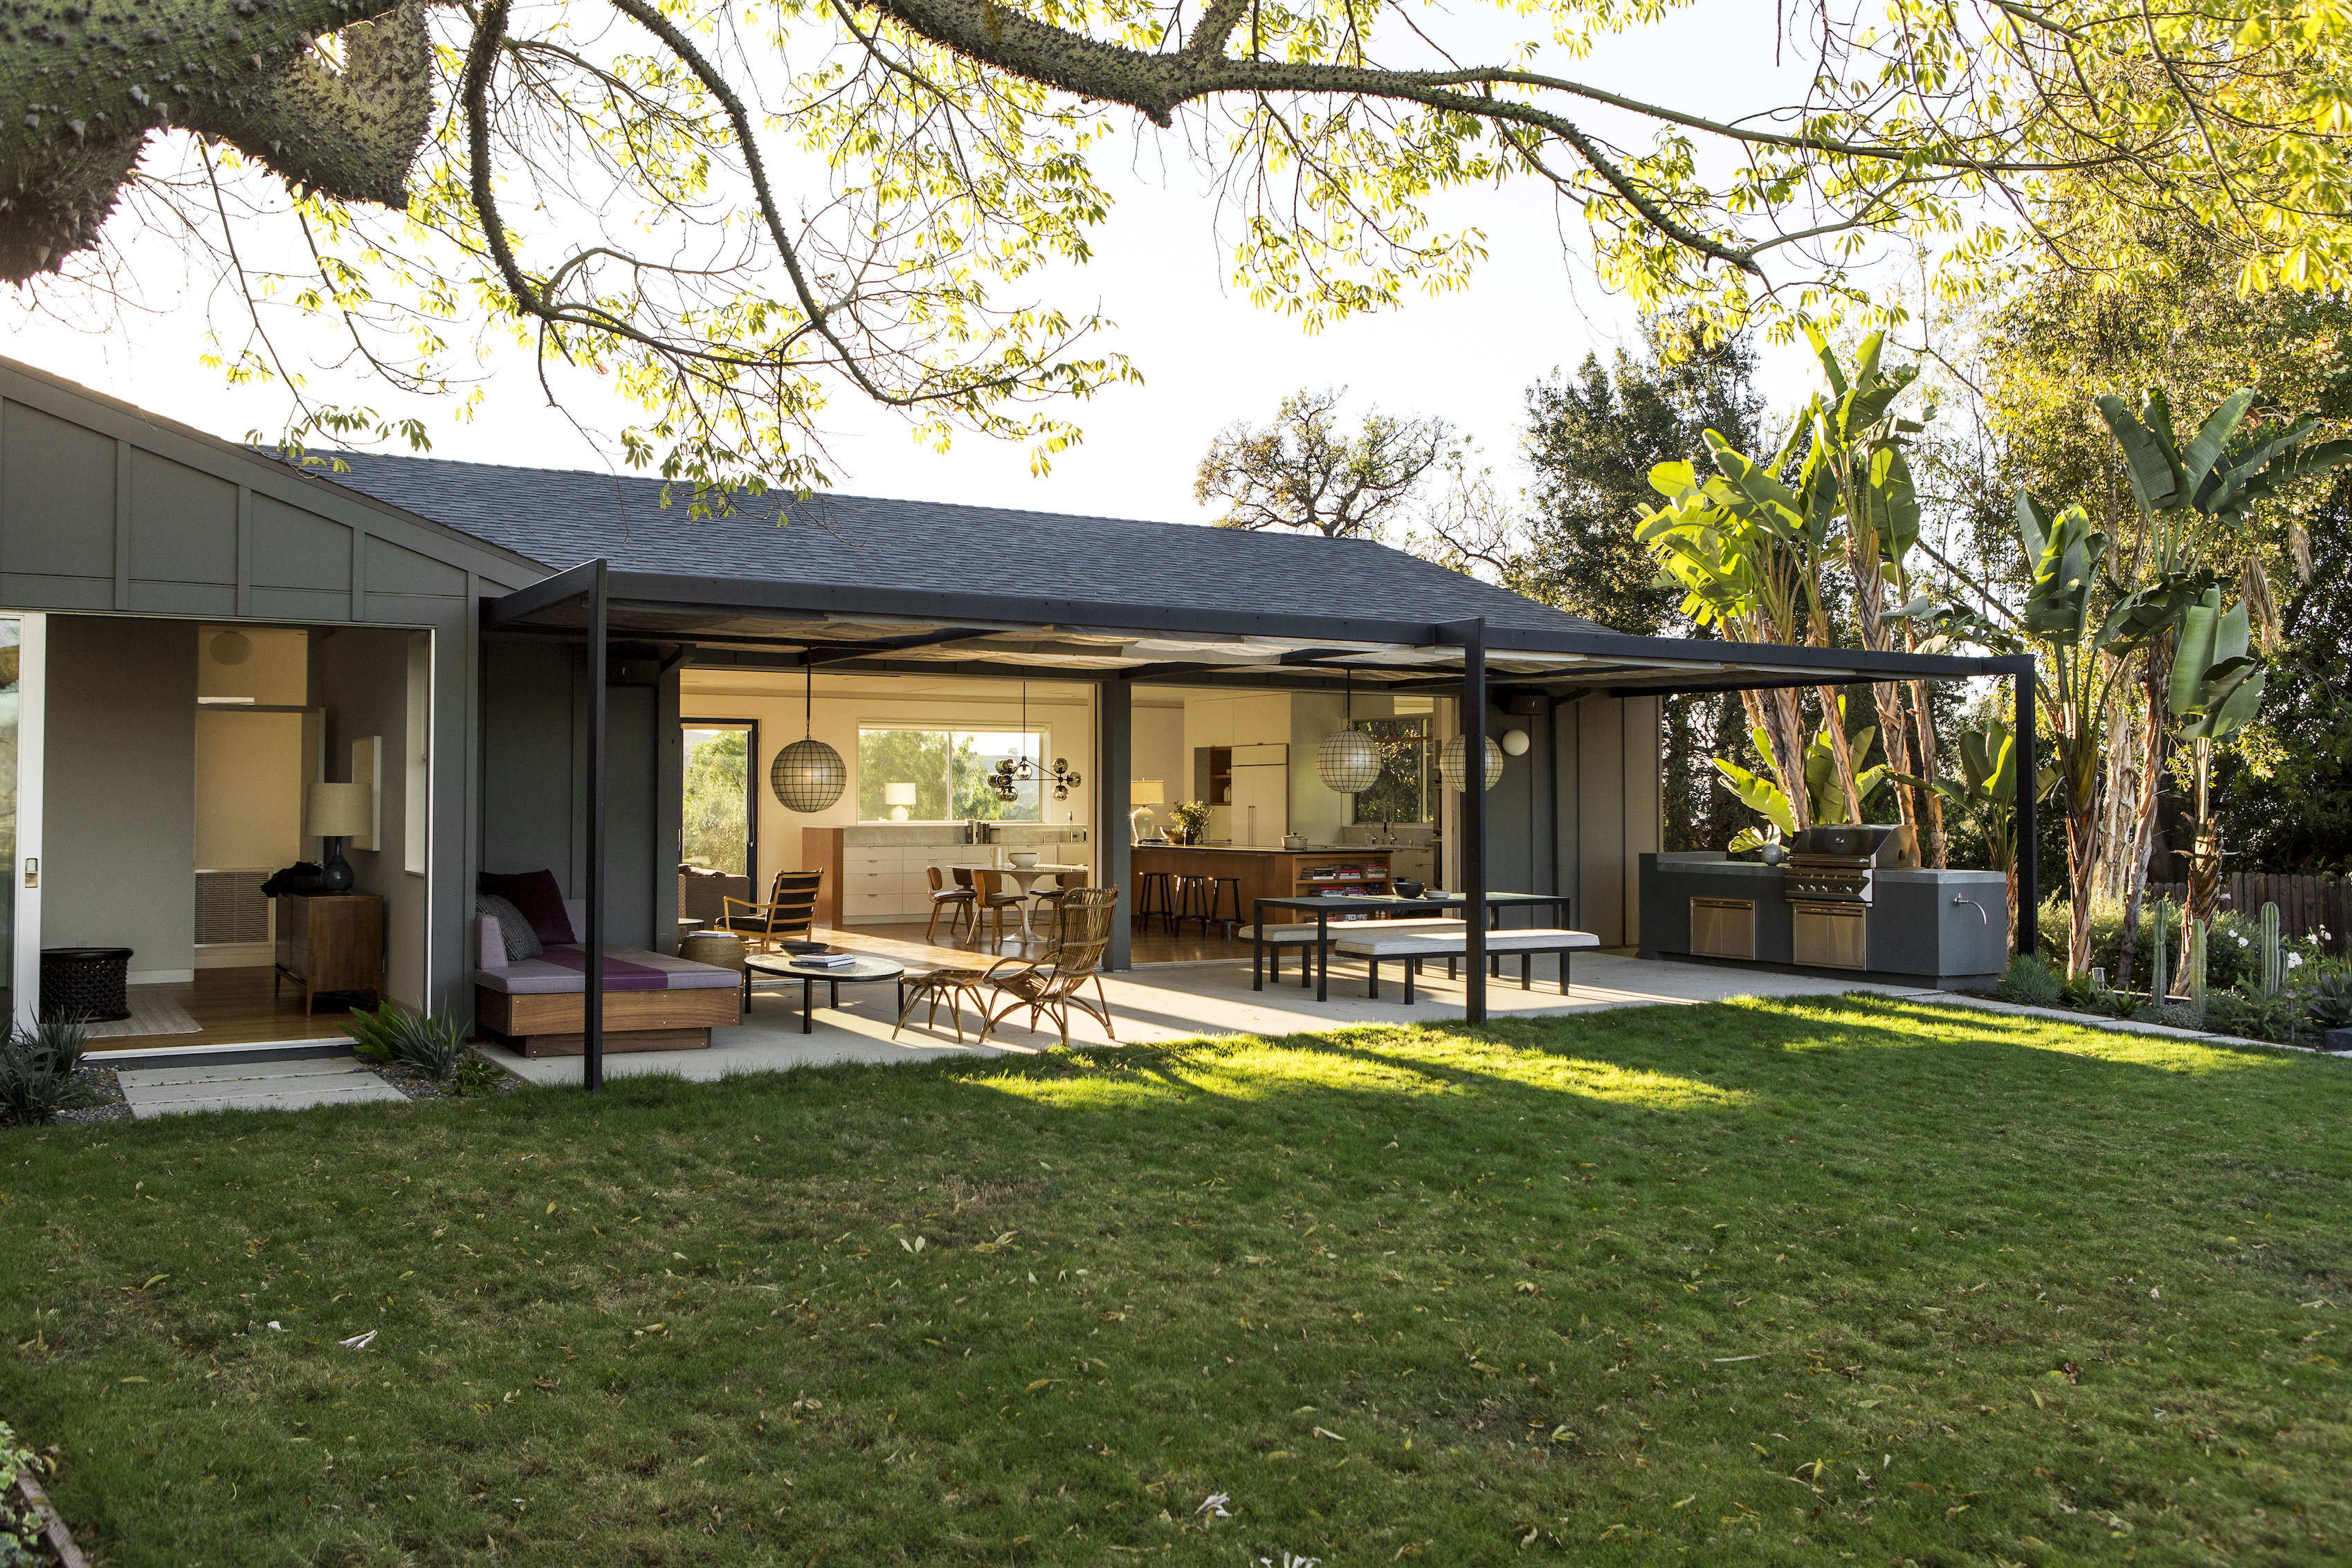 Indoor Outdoor Living An LA Ranch Rehab by Barbara Bestor and DISC